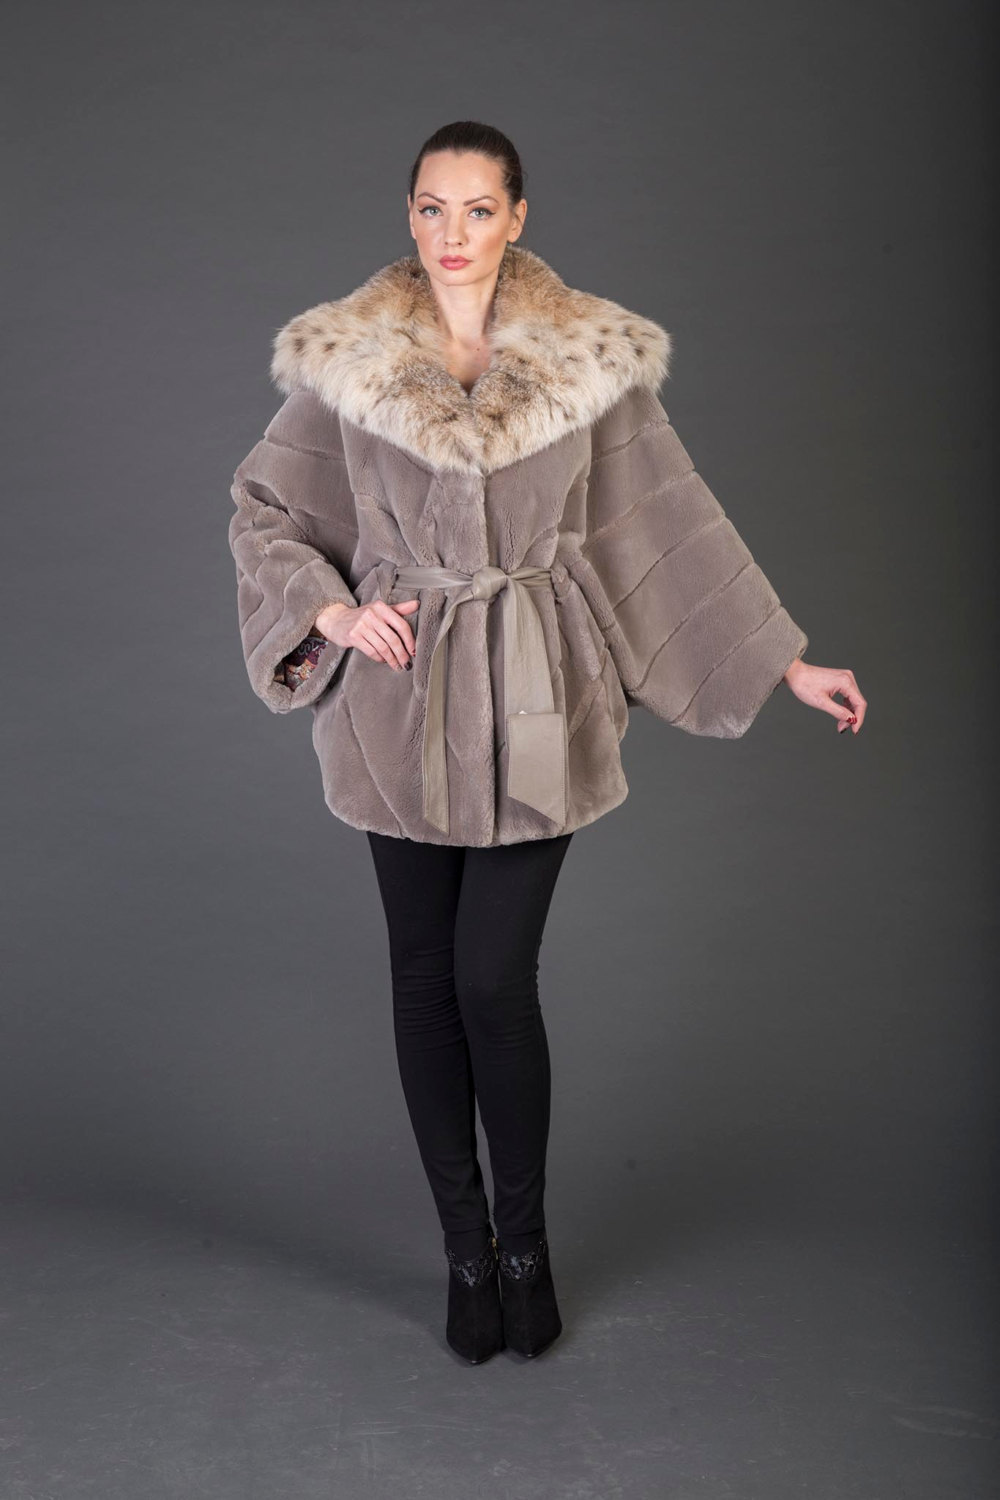 Primary image for Luxury gift/Mike Beaver Fur Coat/Fur jacket /hooded wiith belt/Wedding,or annive